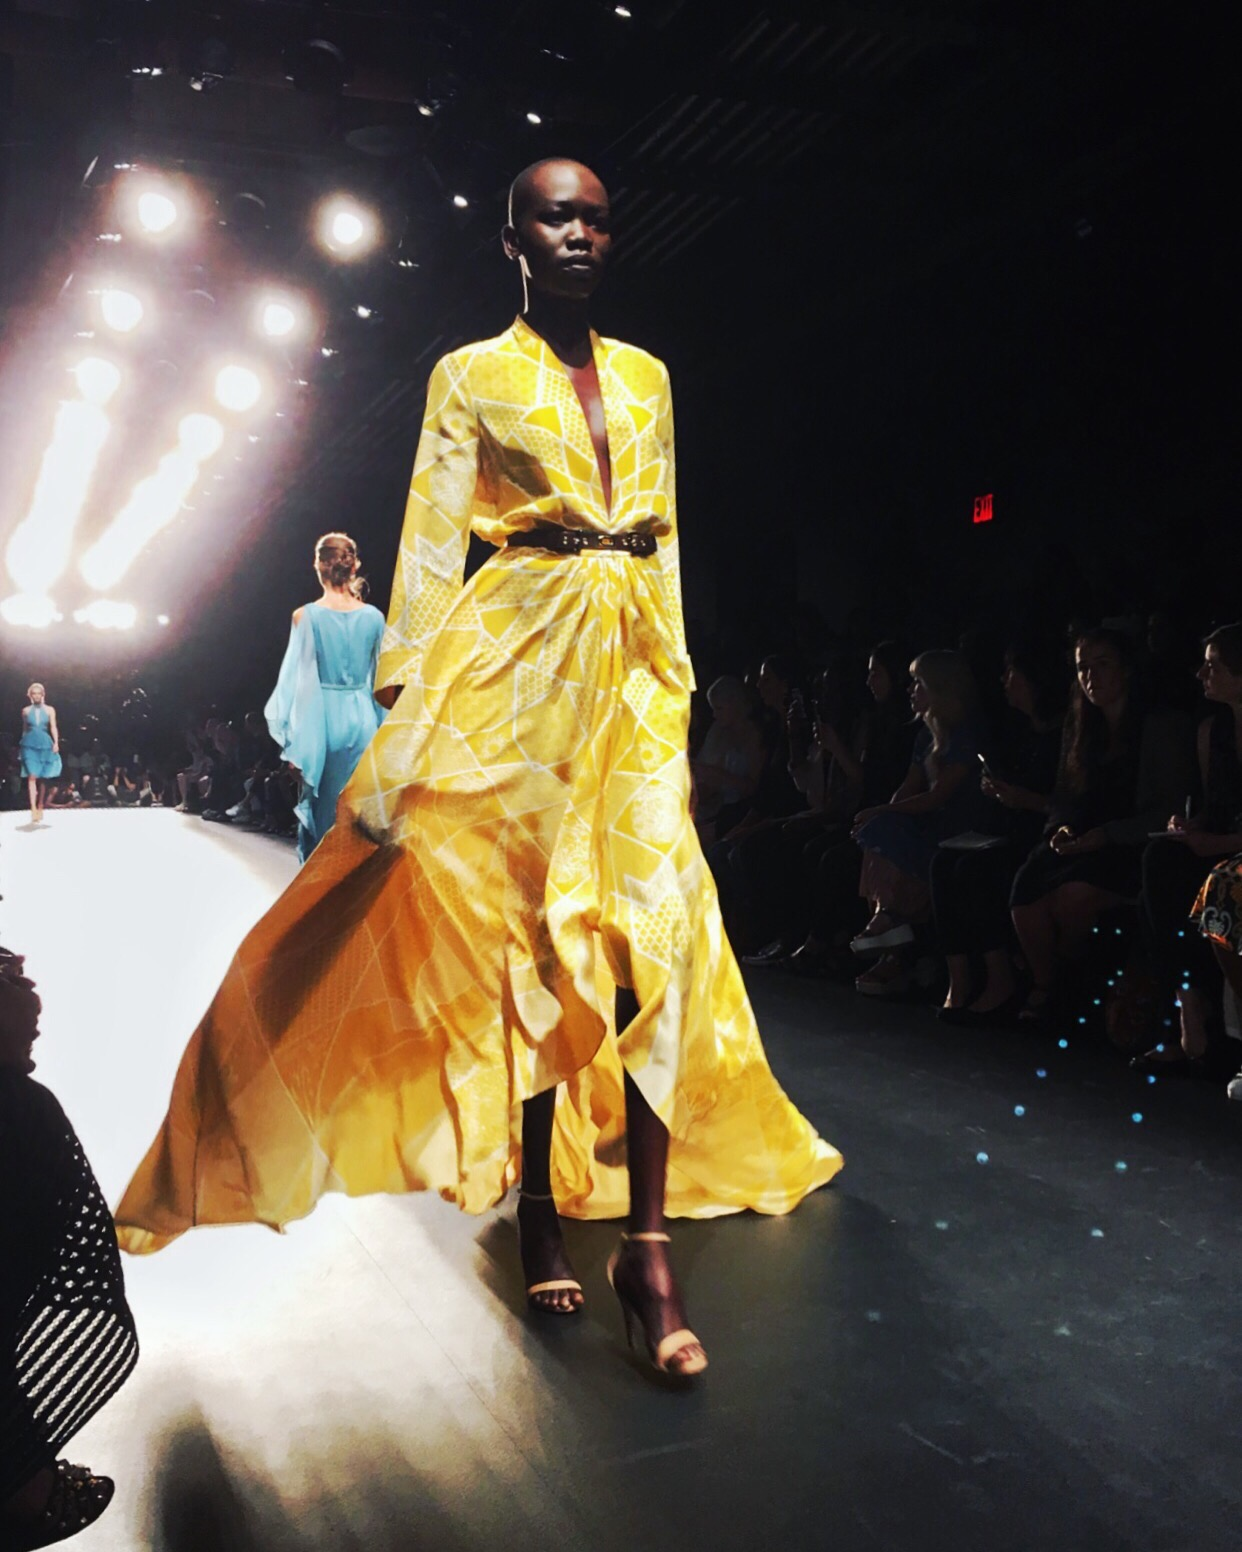 Stunning gold gown by Oday Shakar, from his Fashion Week debut.